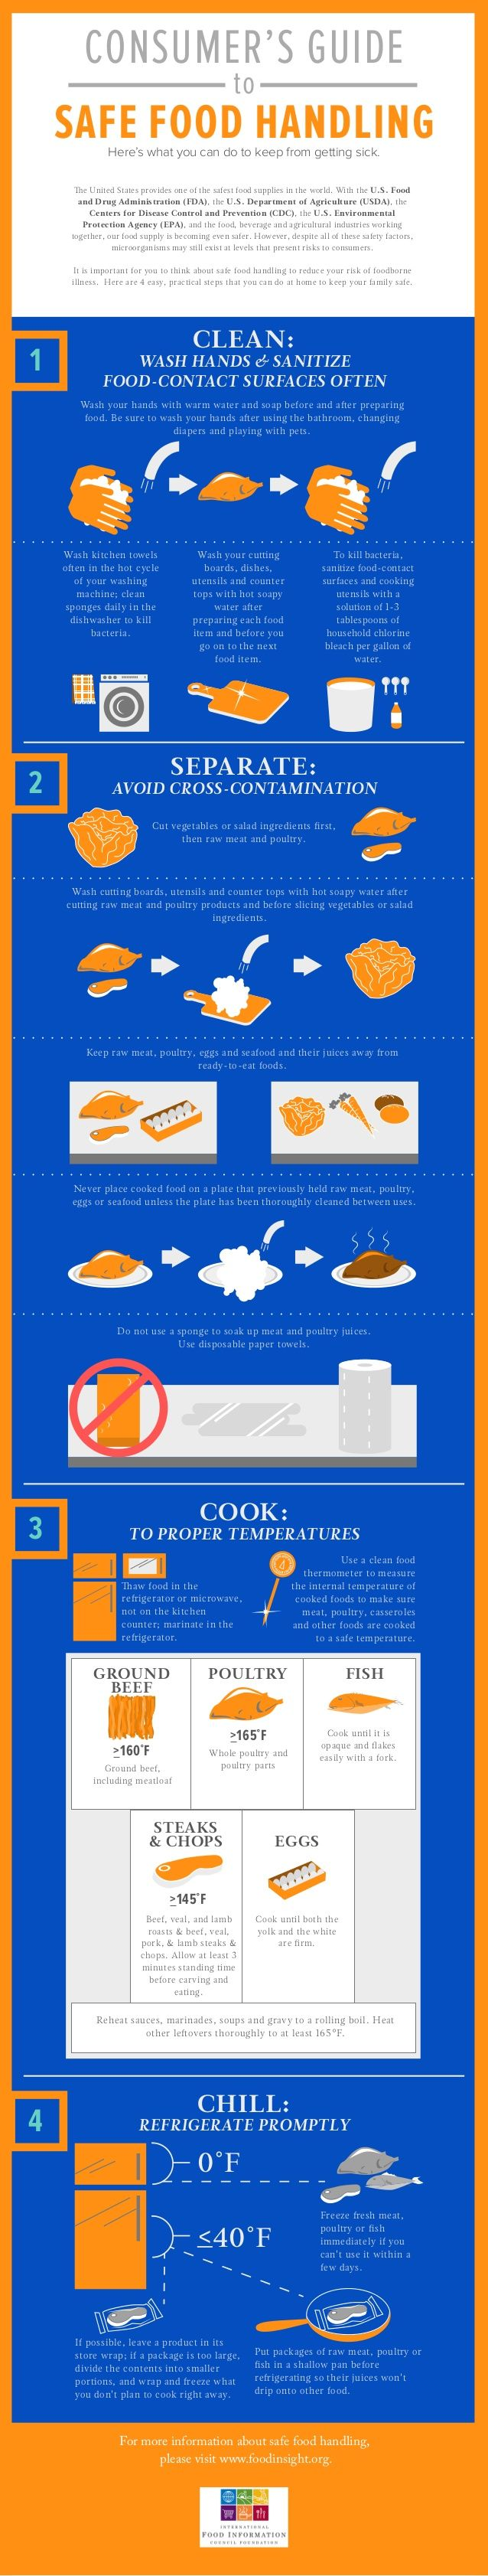 Consumer's Guide to Safe Food Handling Infographic http://www.foodinsight.org/blogs/consumers-guide-safe-food-handling